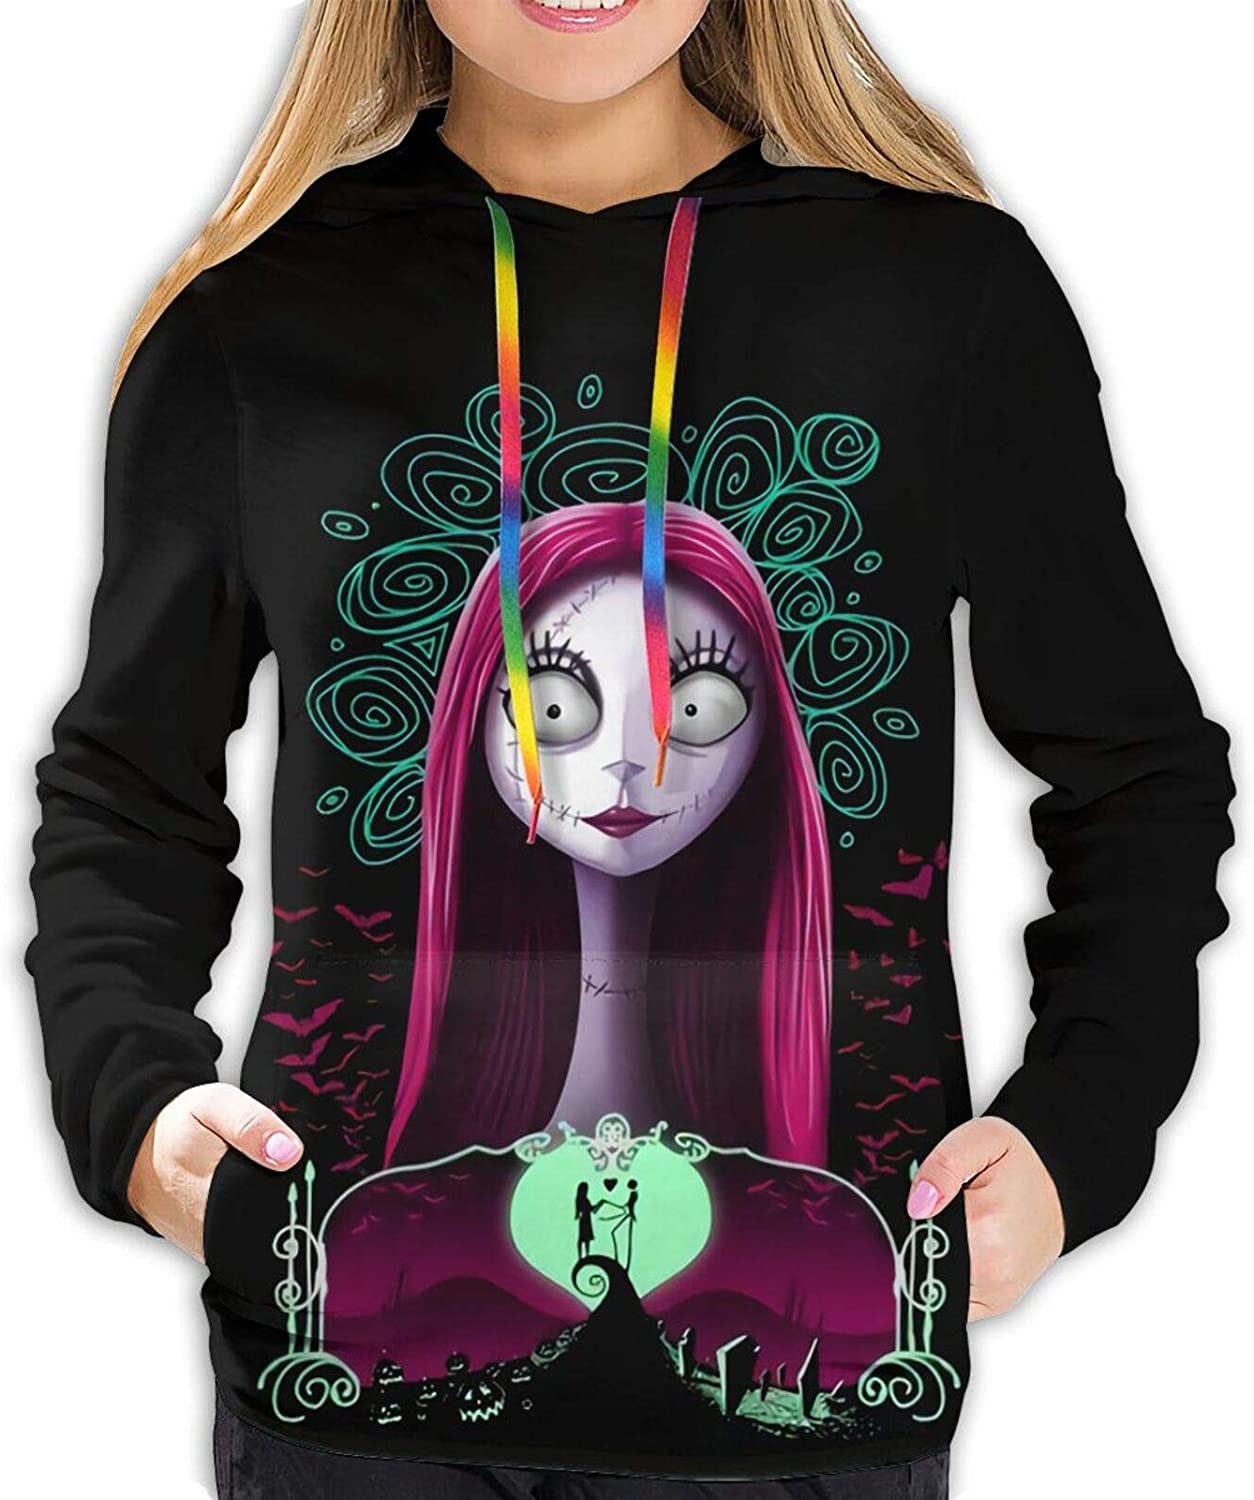 Anshun The Nightmare Before Christmas Women's Fashion Hoodie Hooded Pocket Sweater Casual Pullover